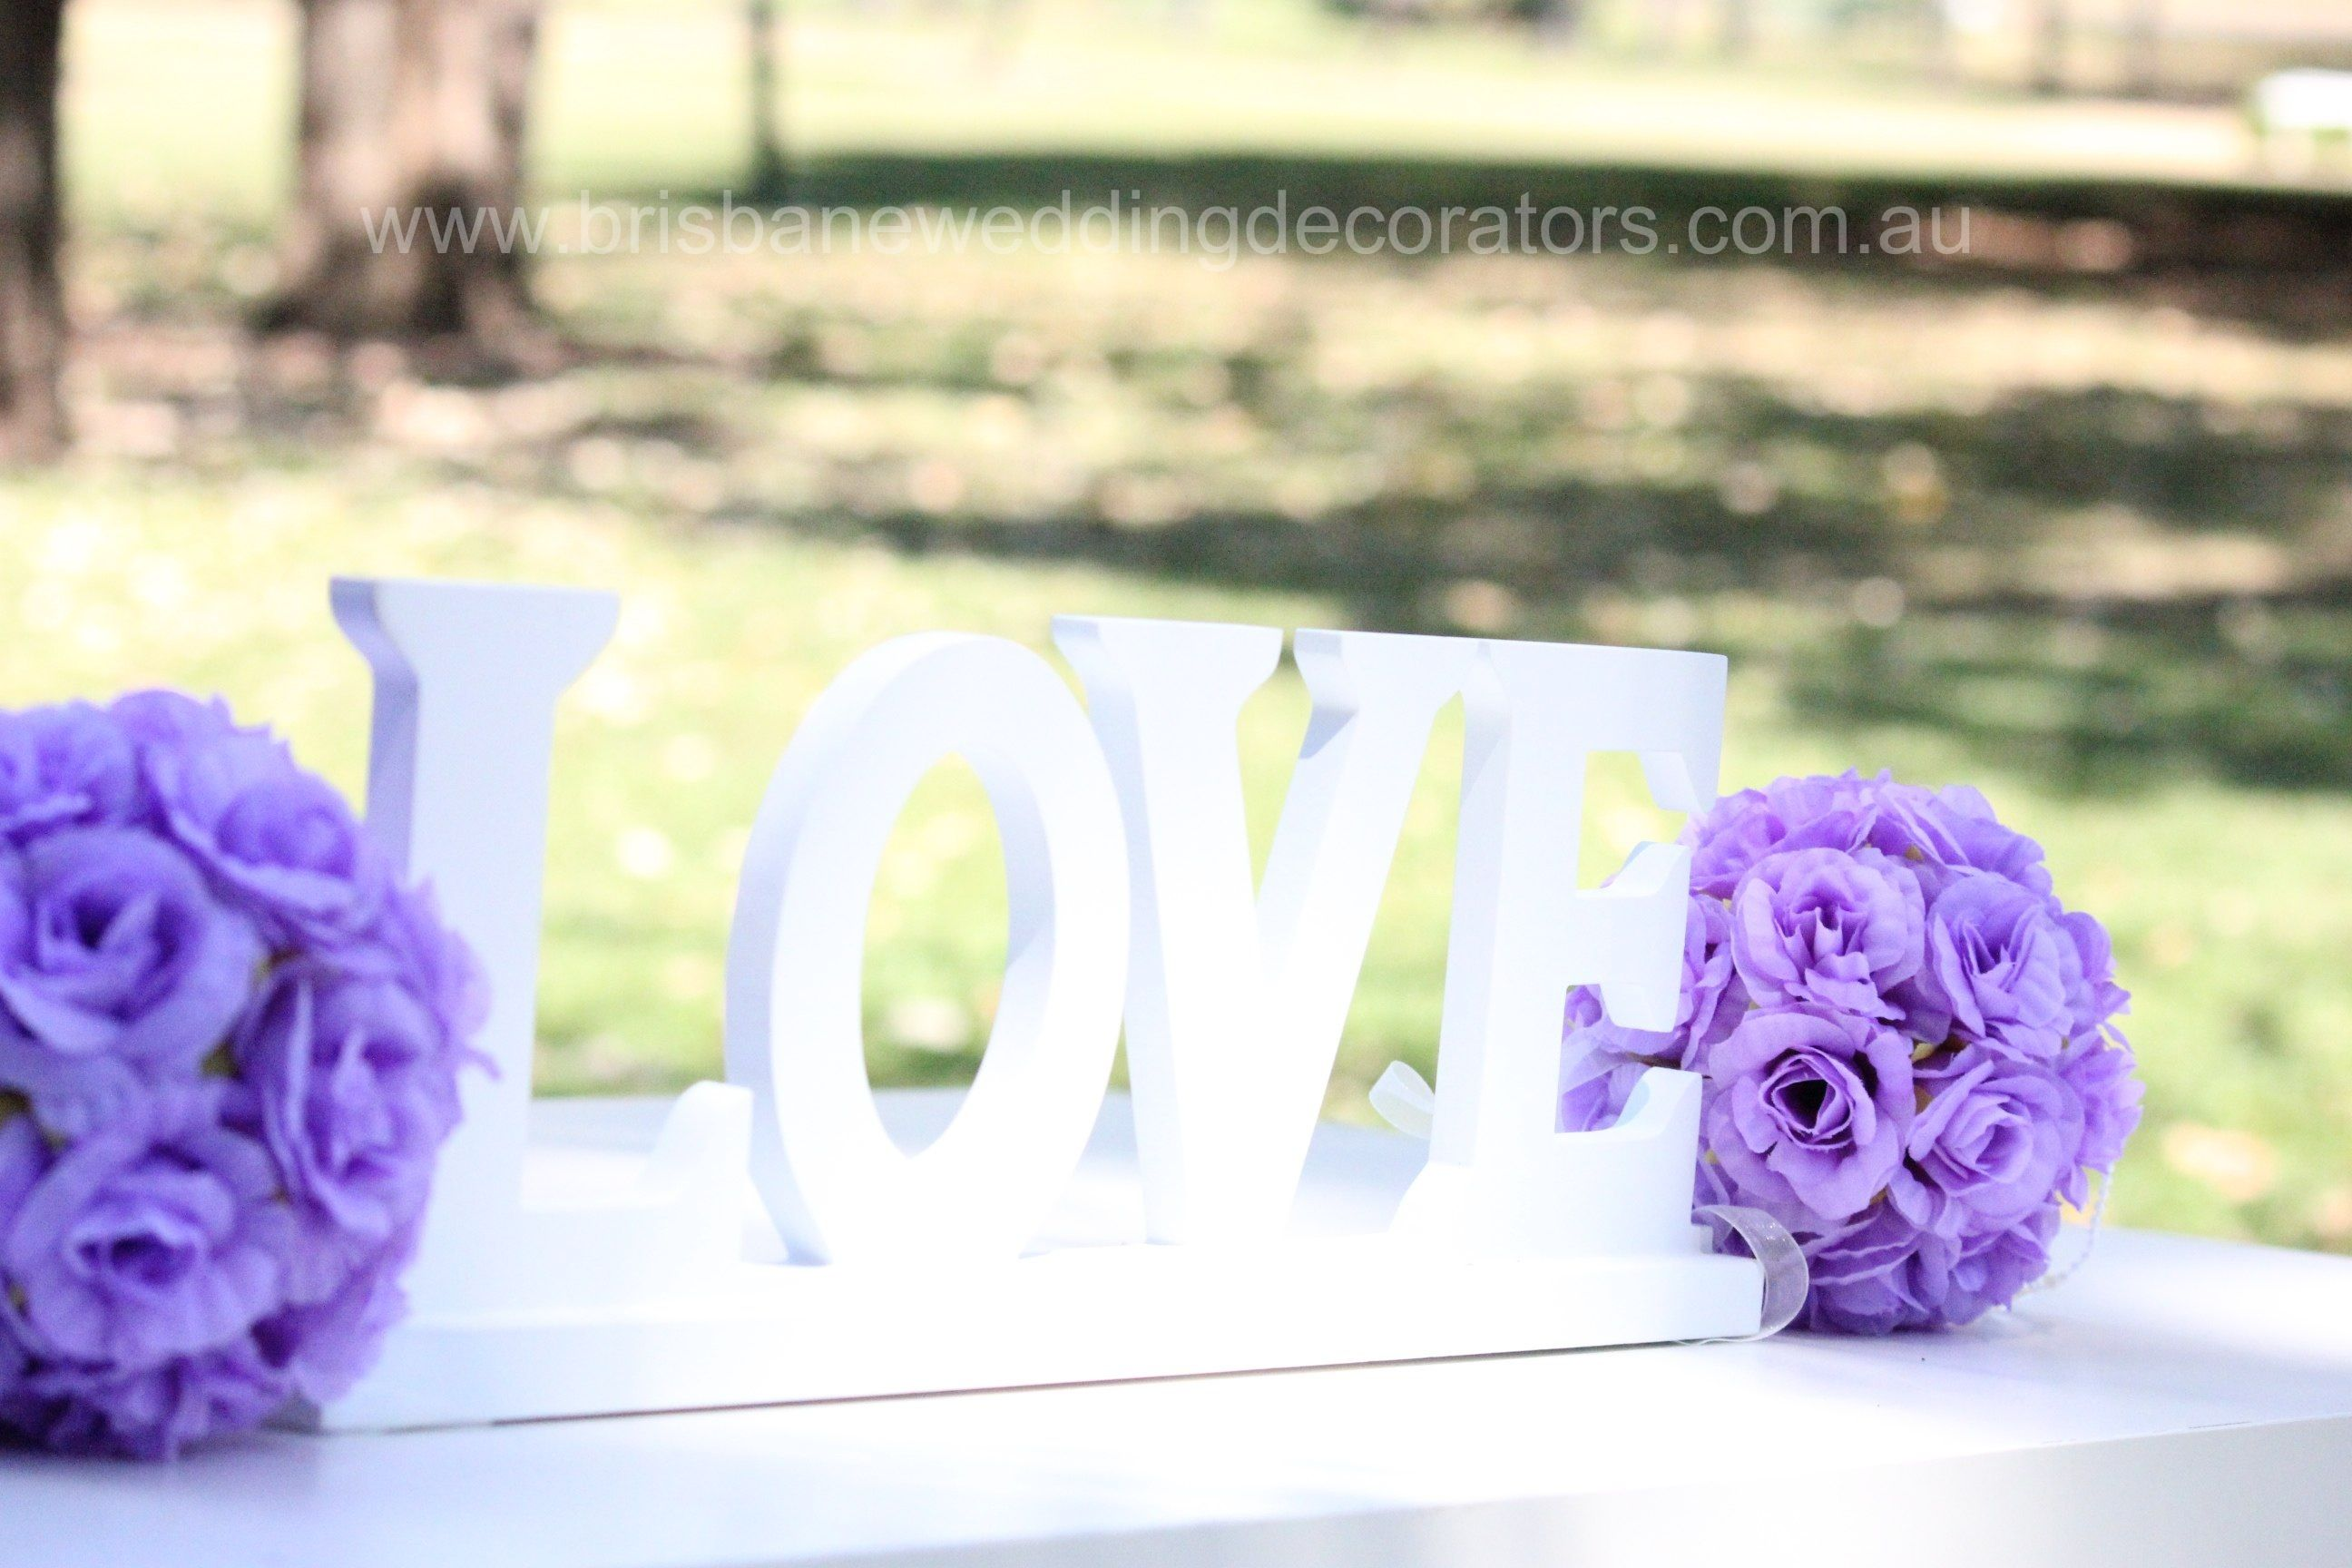 LOVE Signing Table Decor By Brisbane Wedding Decorators Brisbaneweddingdecoratorsau